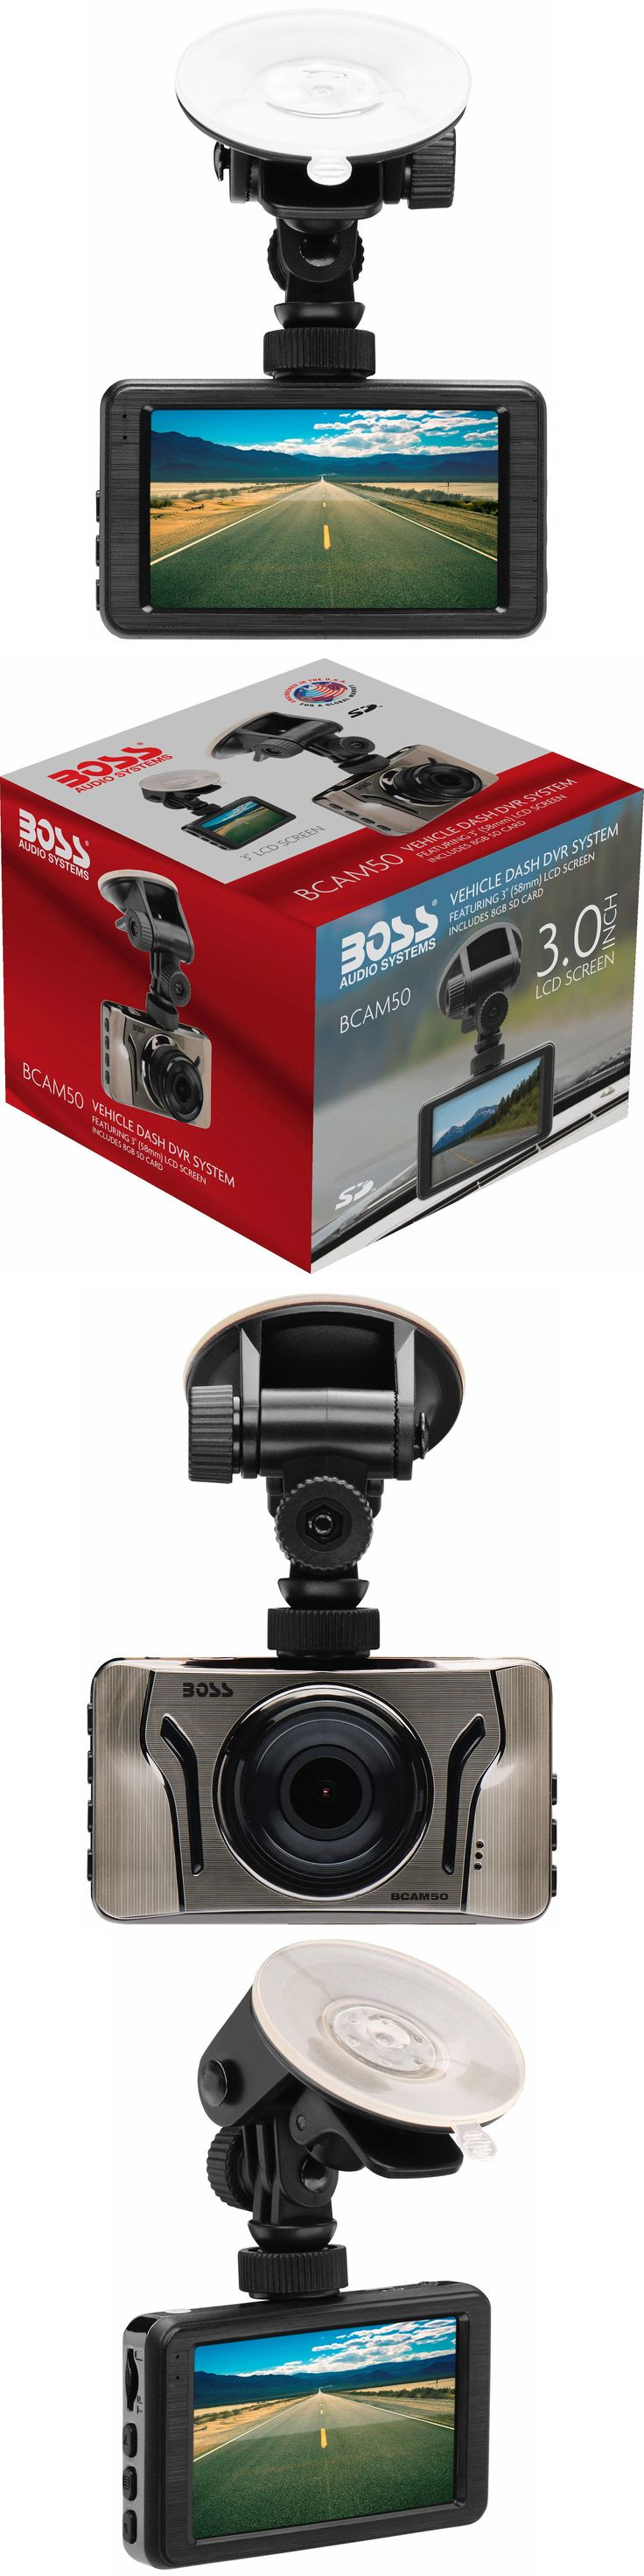 Other Car Video: New Boss Audio 3 Lcd Screen 1080P Full Hd Dash Camera W 8Gb Sd Card Bcam50 -> BUY IT NOW ONLY: $58.99 on eBay!